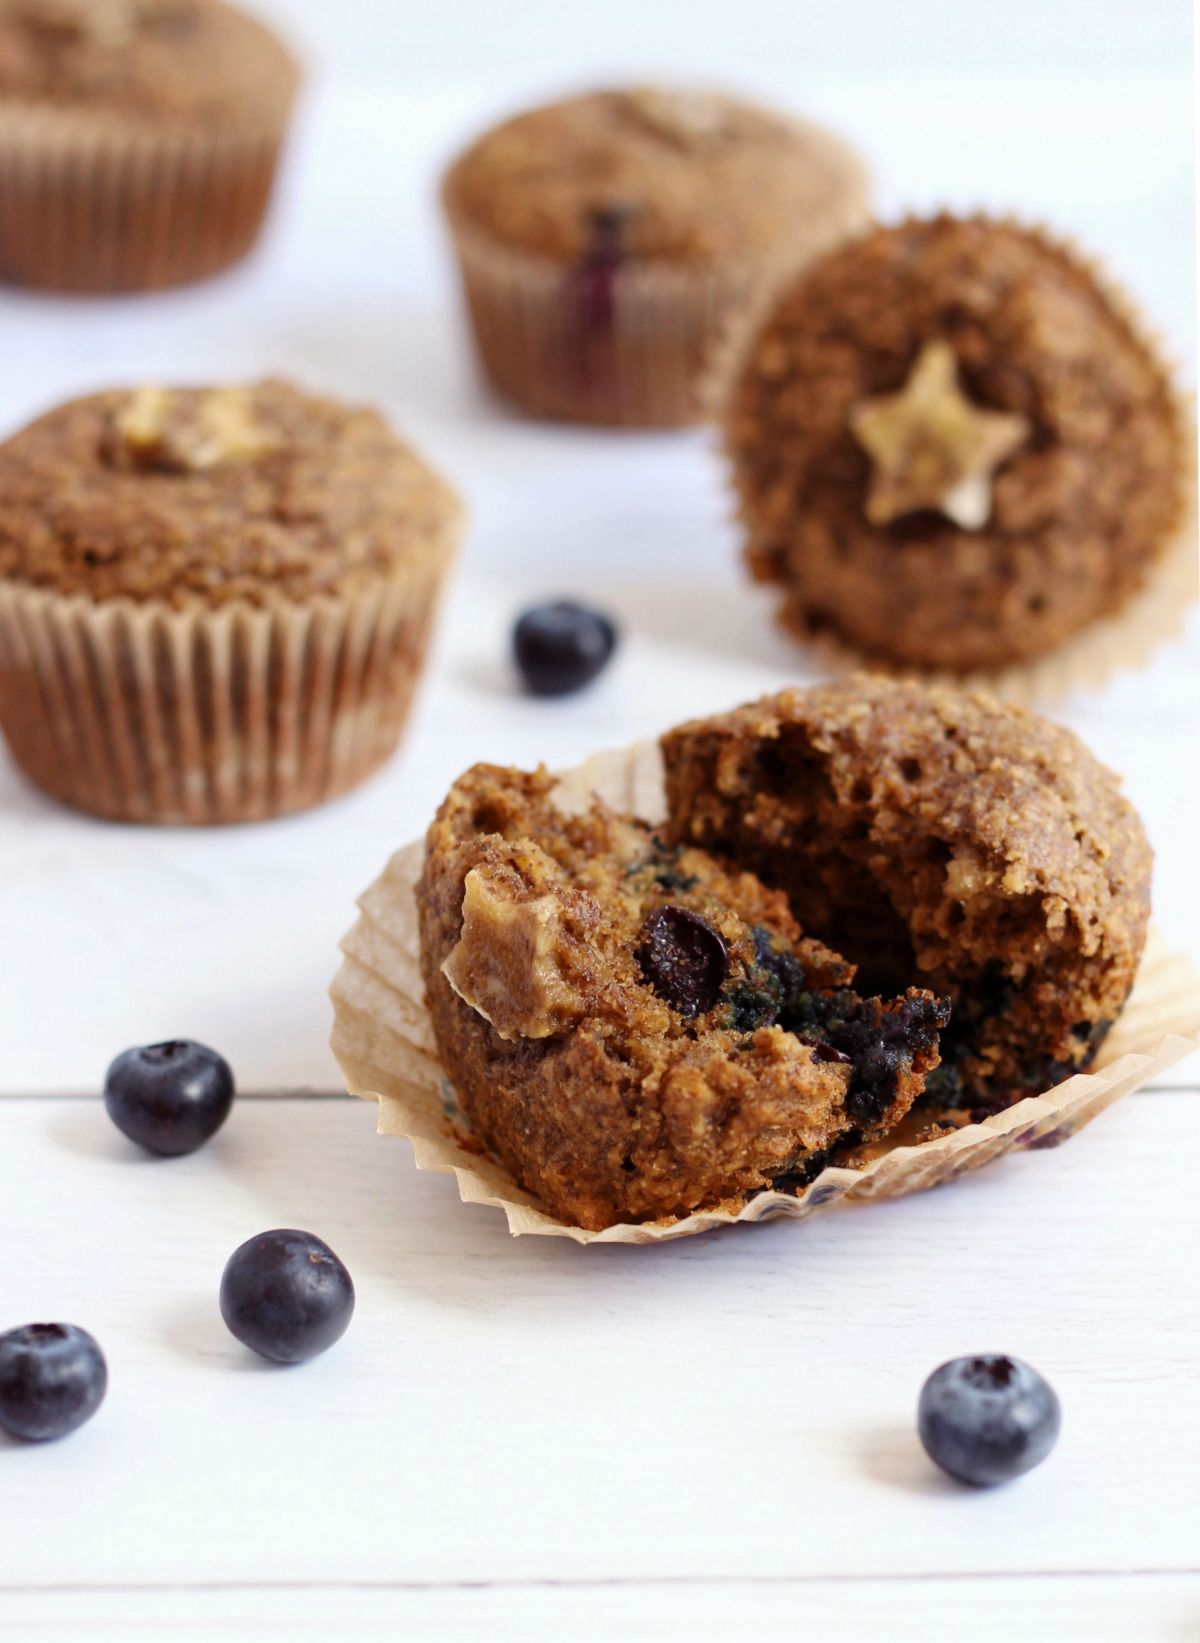 Dairy free blueberry banana muffins sweetened with bananas and little honey.